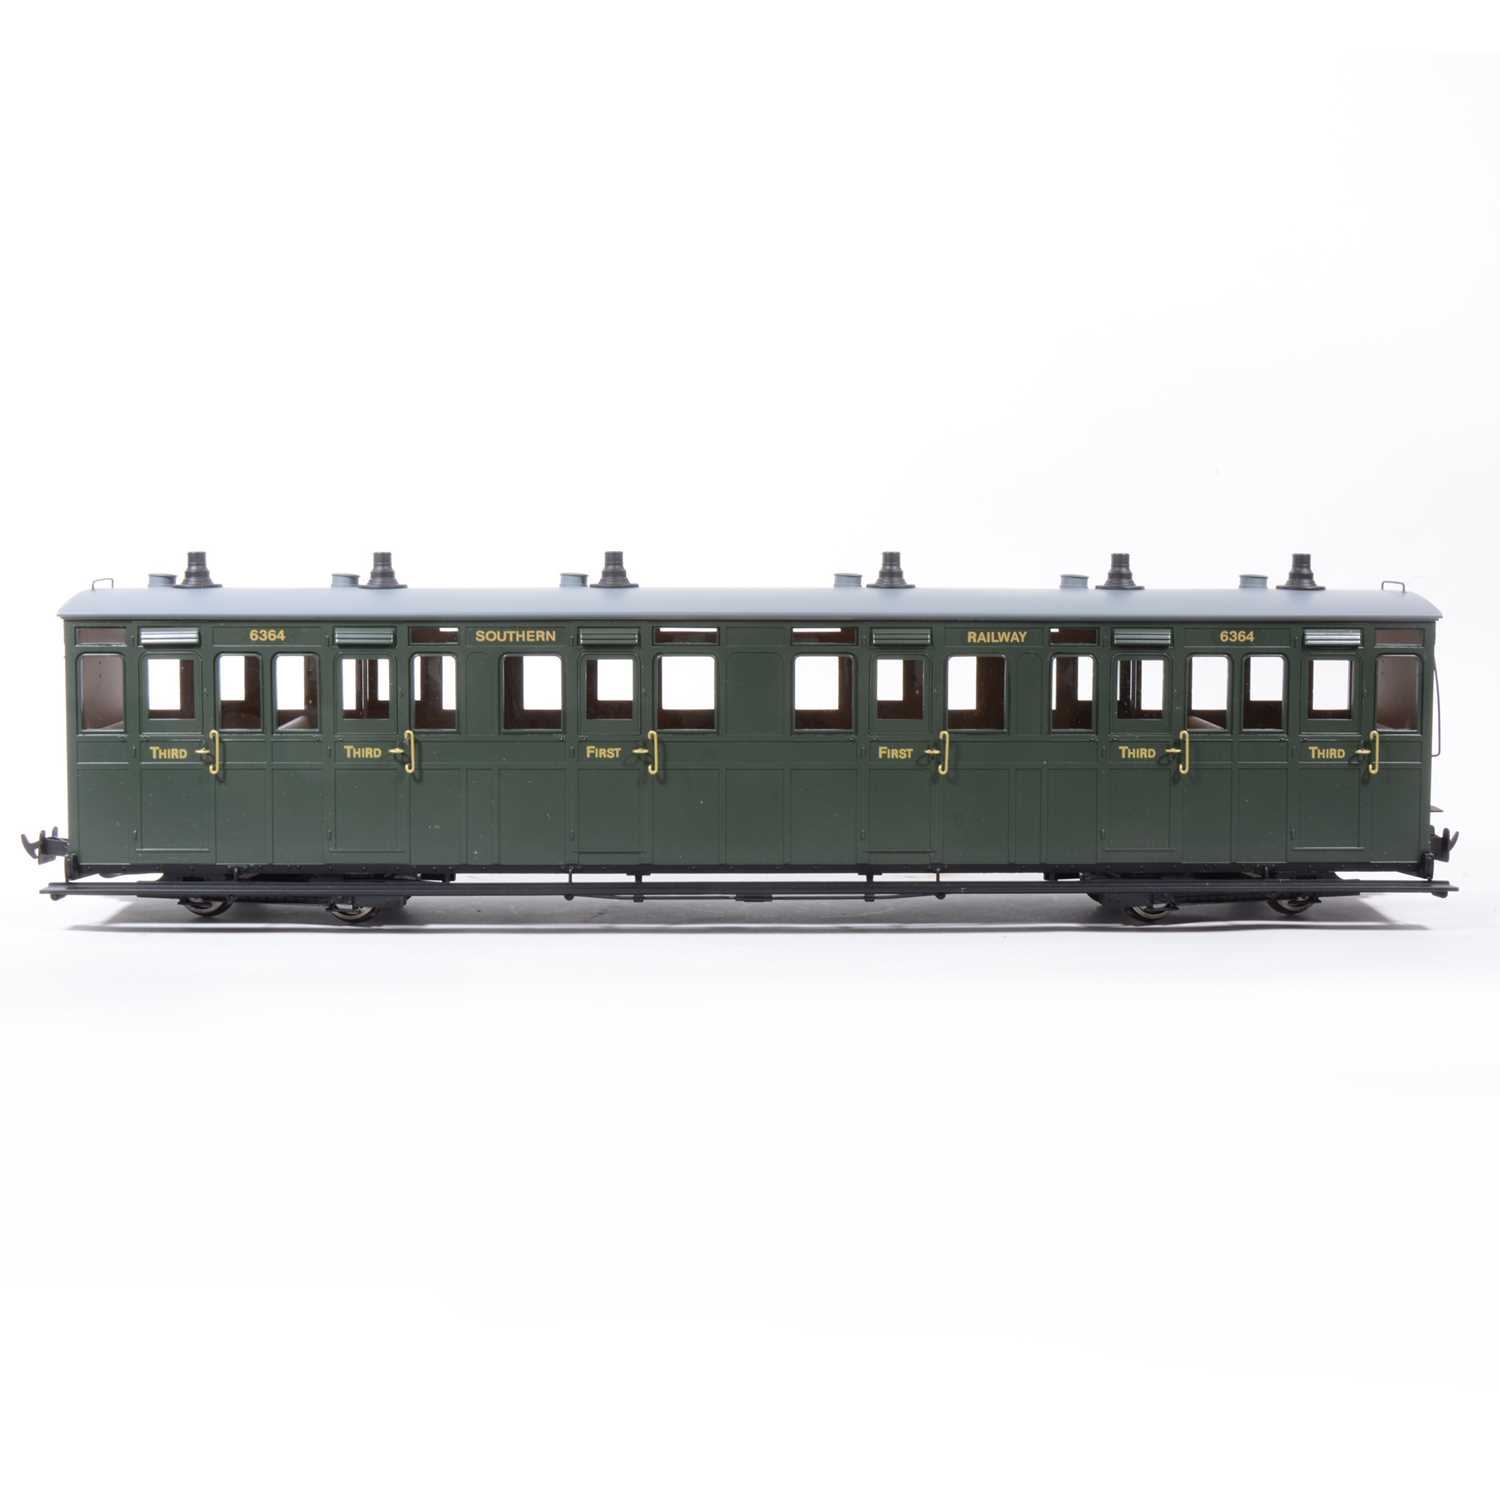 Lot 63-Accucraft G scale passenger coaches, Lynton & Barnst bogie R19-20, R19-21, R19-19, and a W&L Pickering coaches no.6338, all boxed.